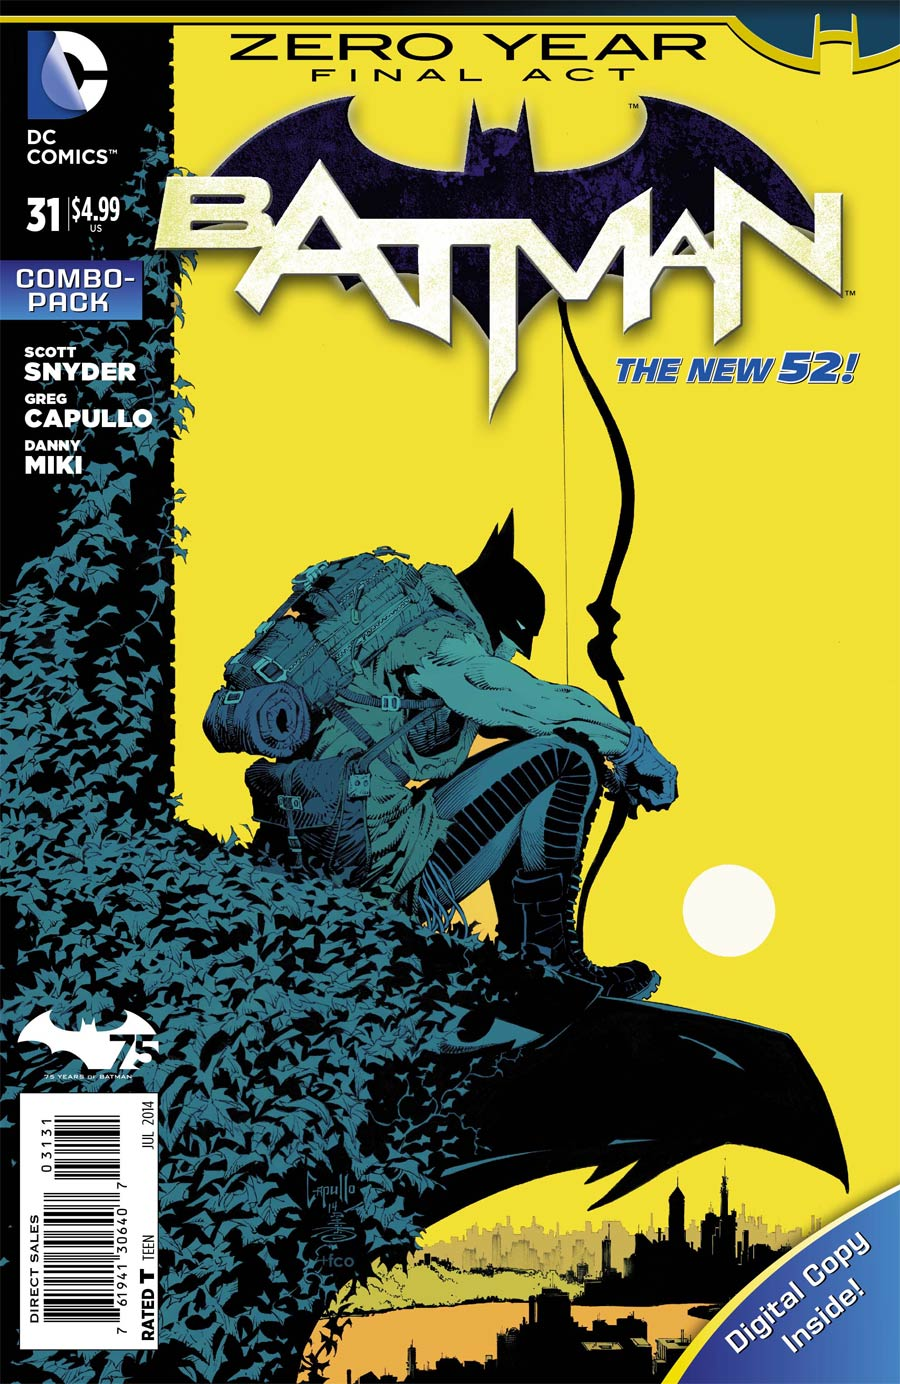 Batman Vol 2 #31 Cover B Combo Pack With Polybag (Zero Year Tie-In)